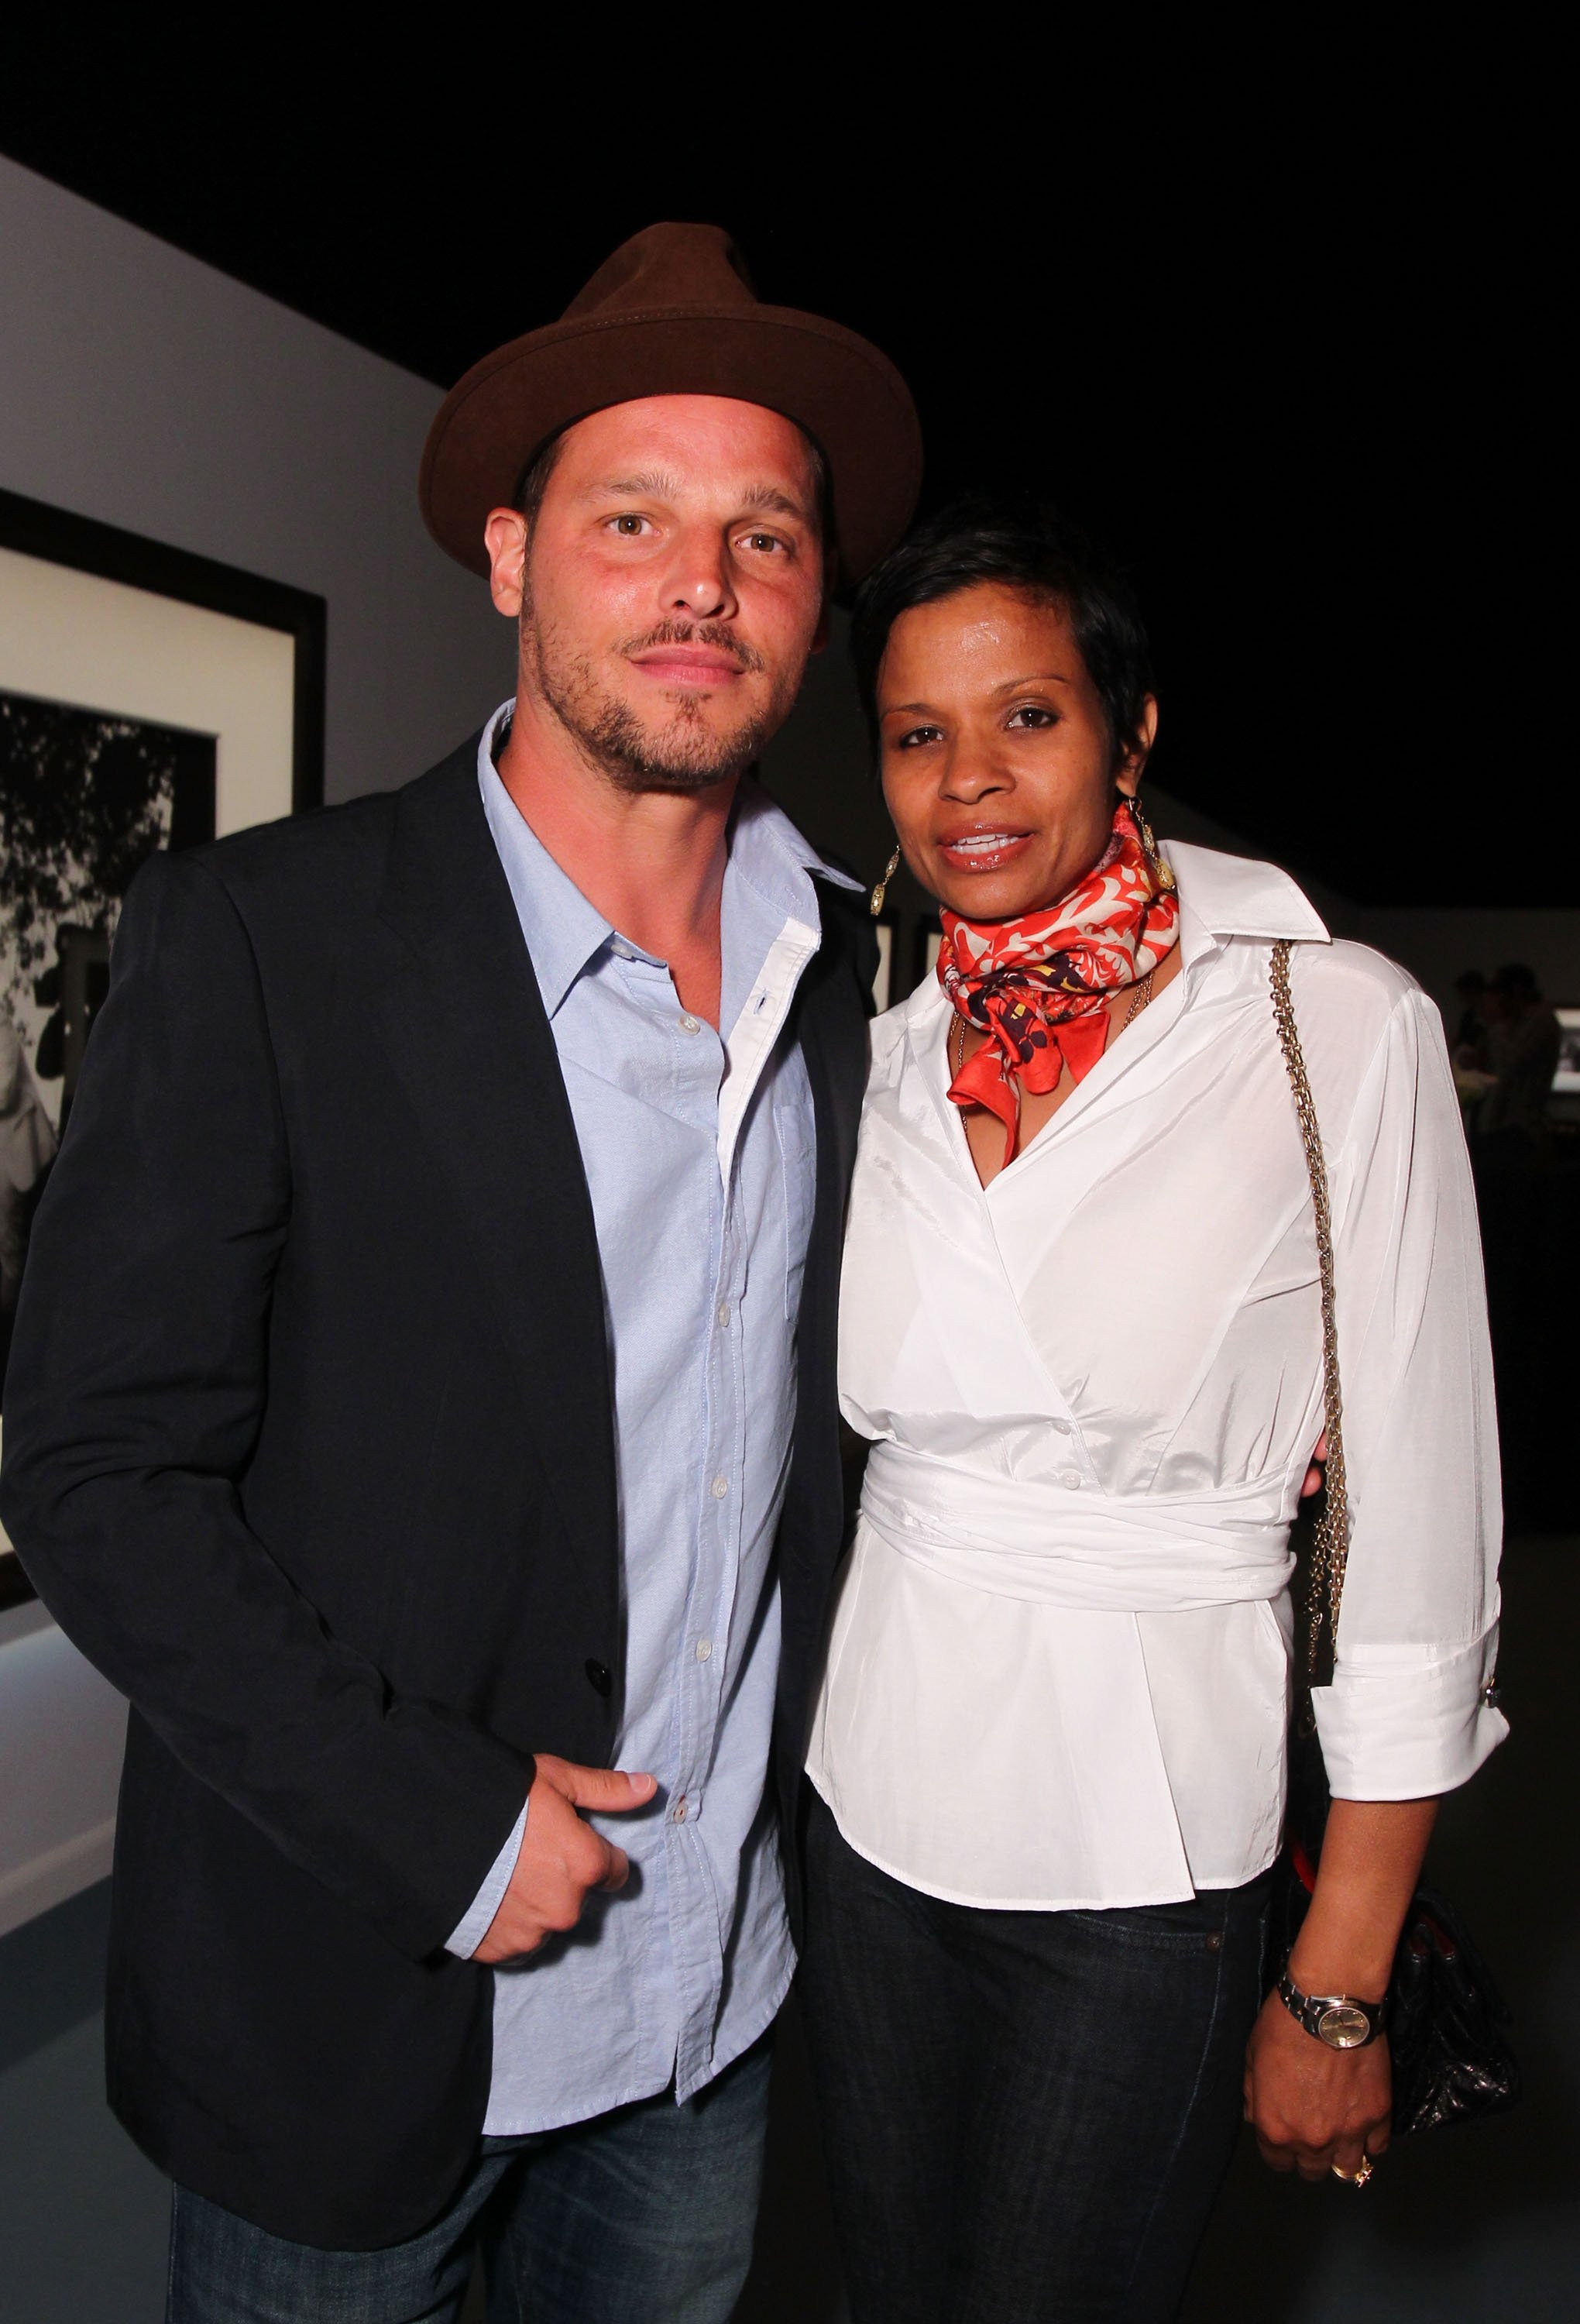 Justin Chambers and Keisha Chambers on April 28, 2011 in Culver City, California | Source: Getty Images